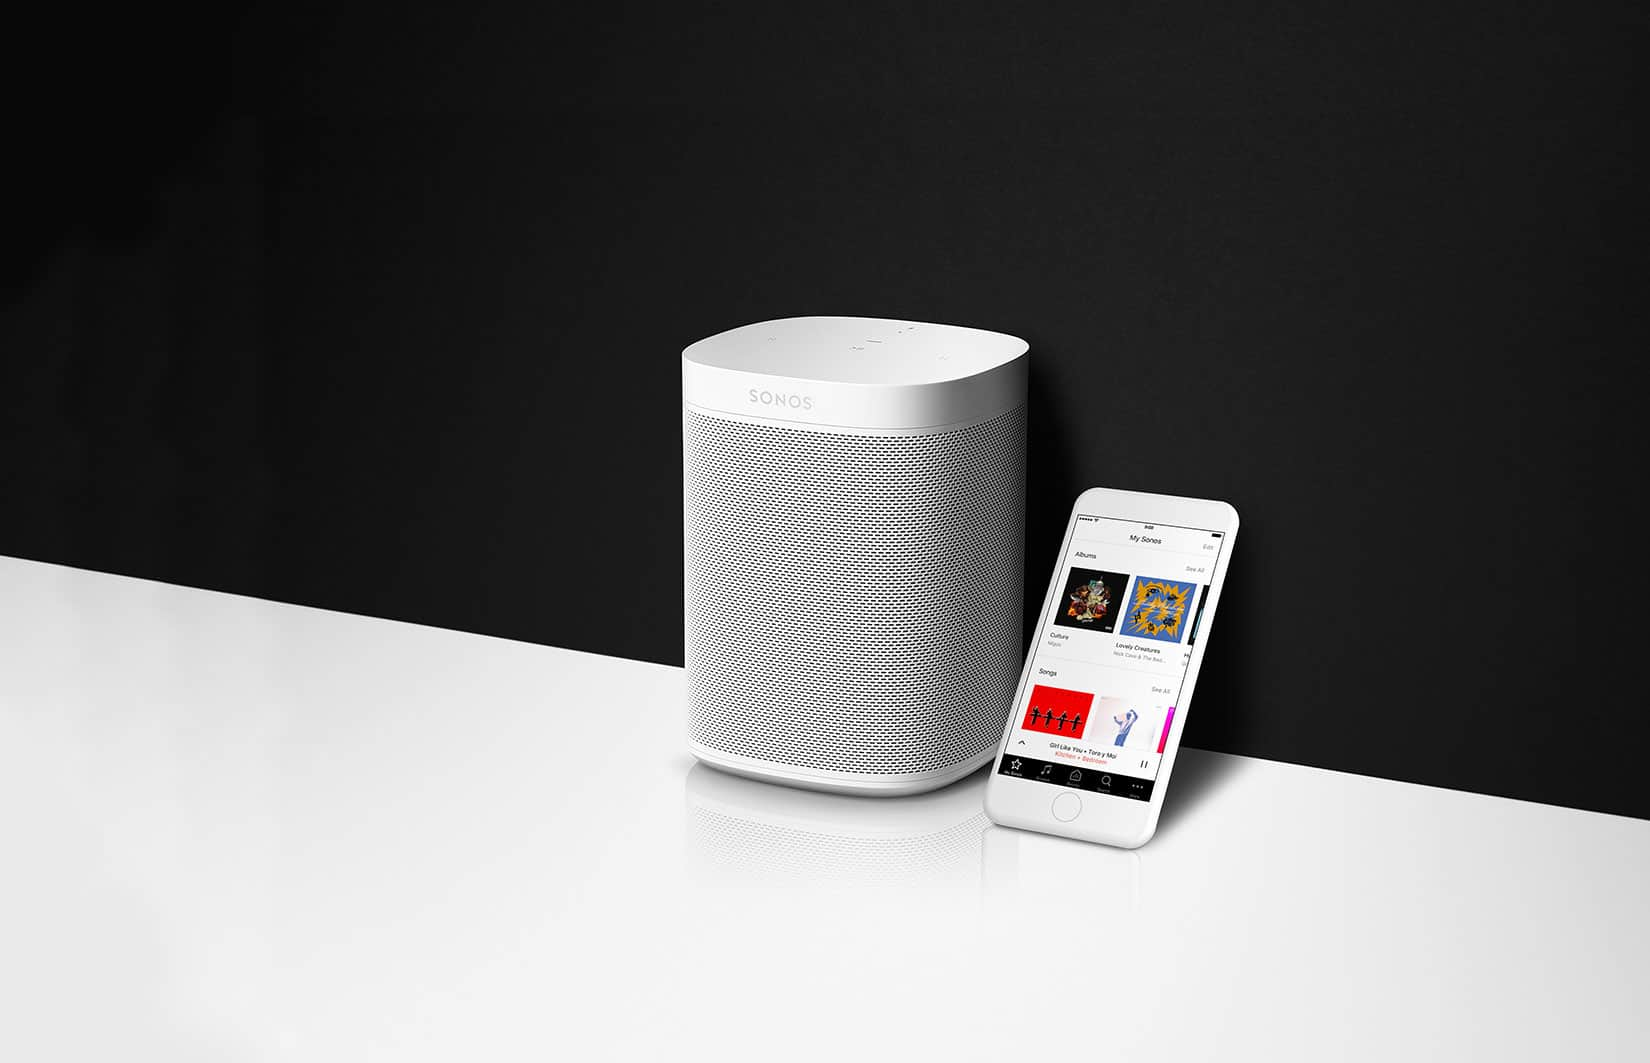 Sonos supports AirPlay2